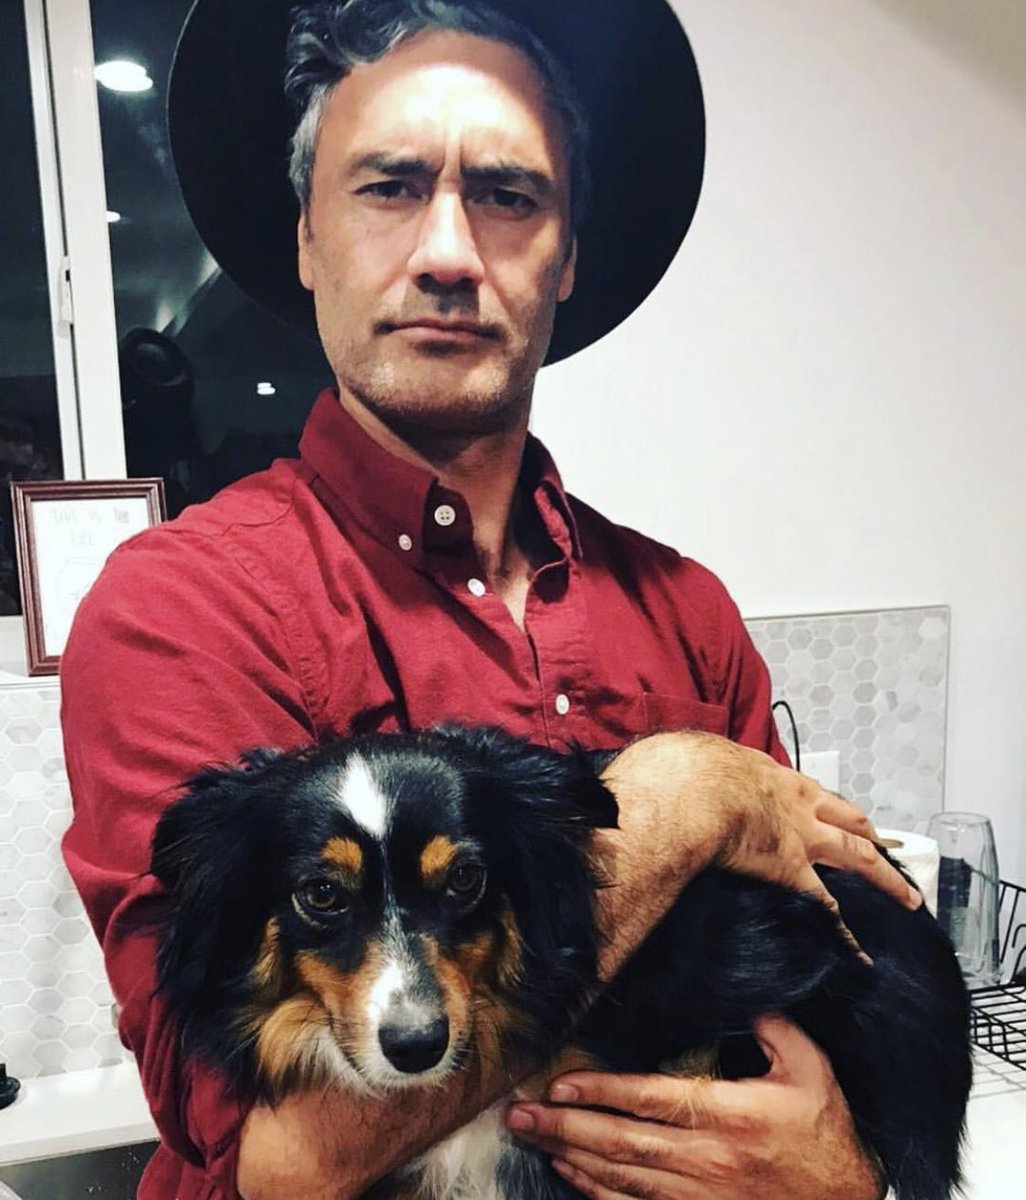 oh to be a dog in taika waititi's arms <br>http://pic.twitter.com/JcaYyQllUI